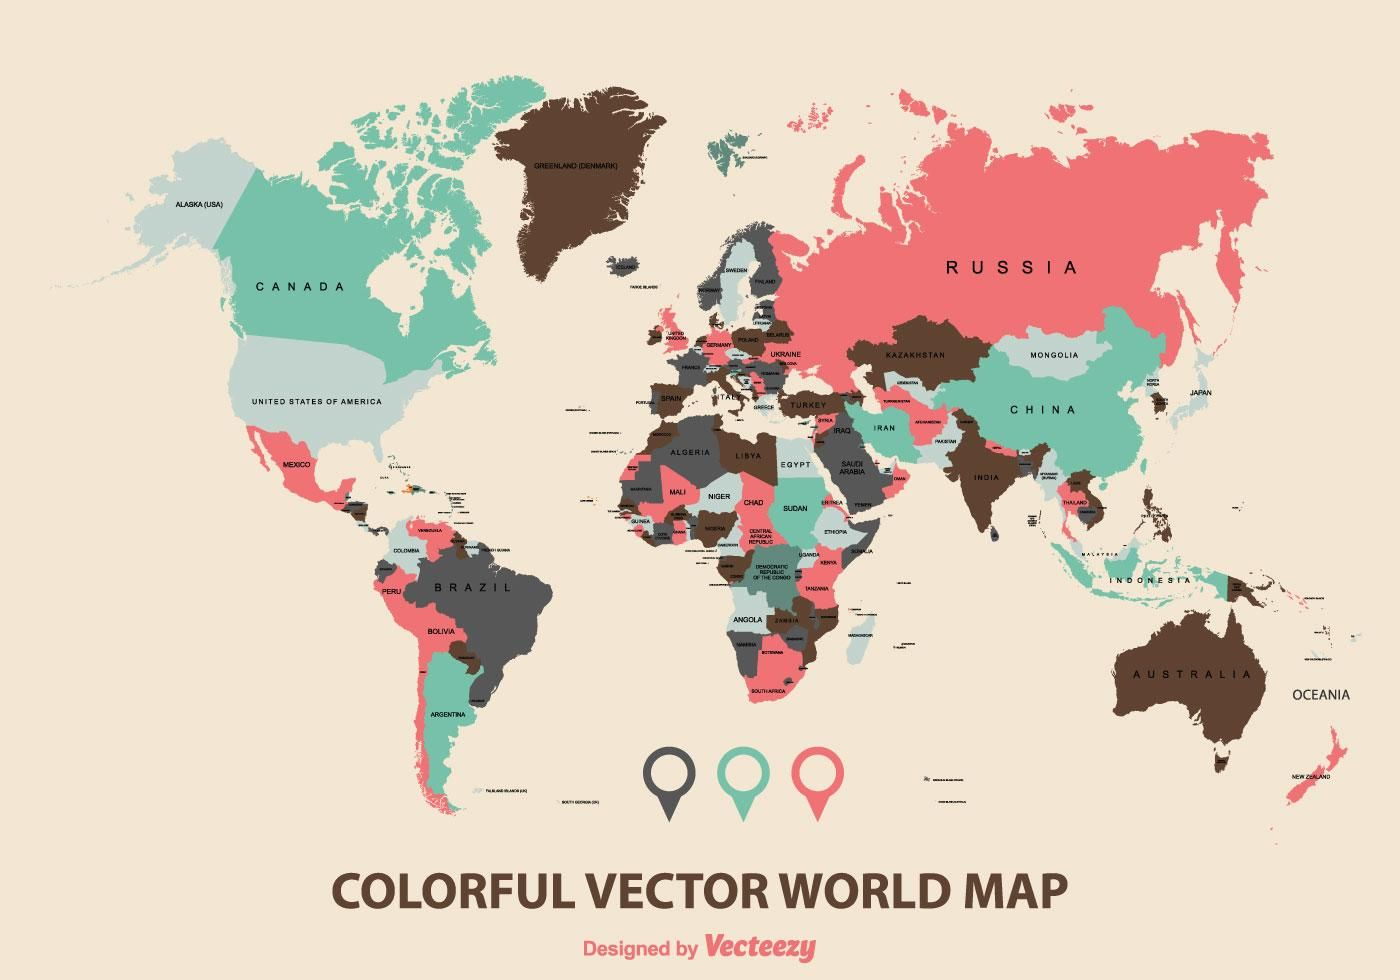 Colorful World Map Vector | World map vector free, Map ...